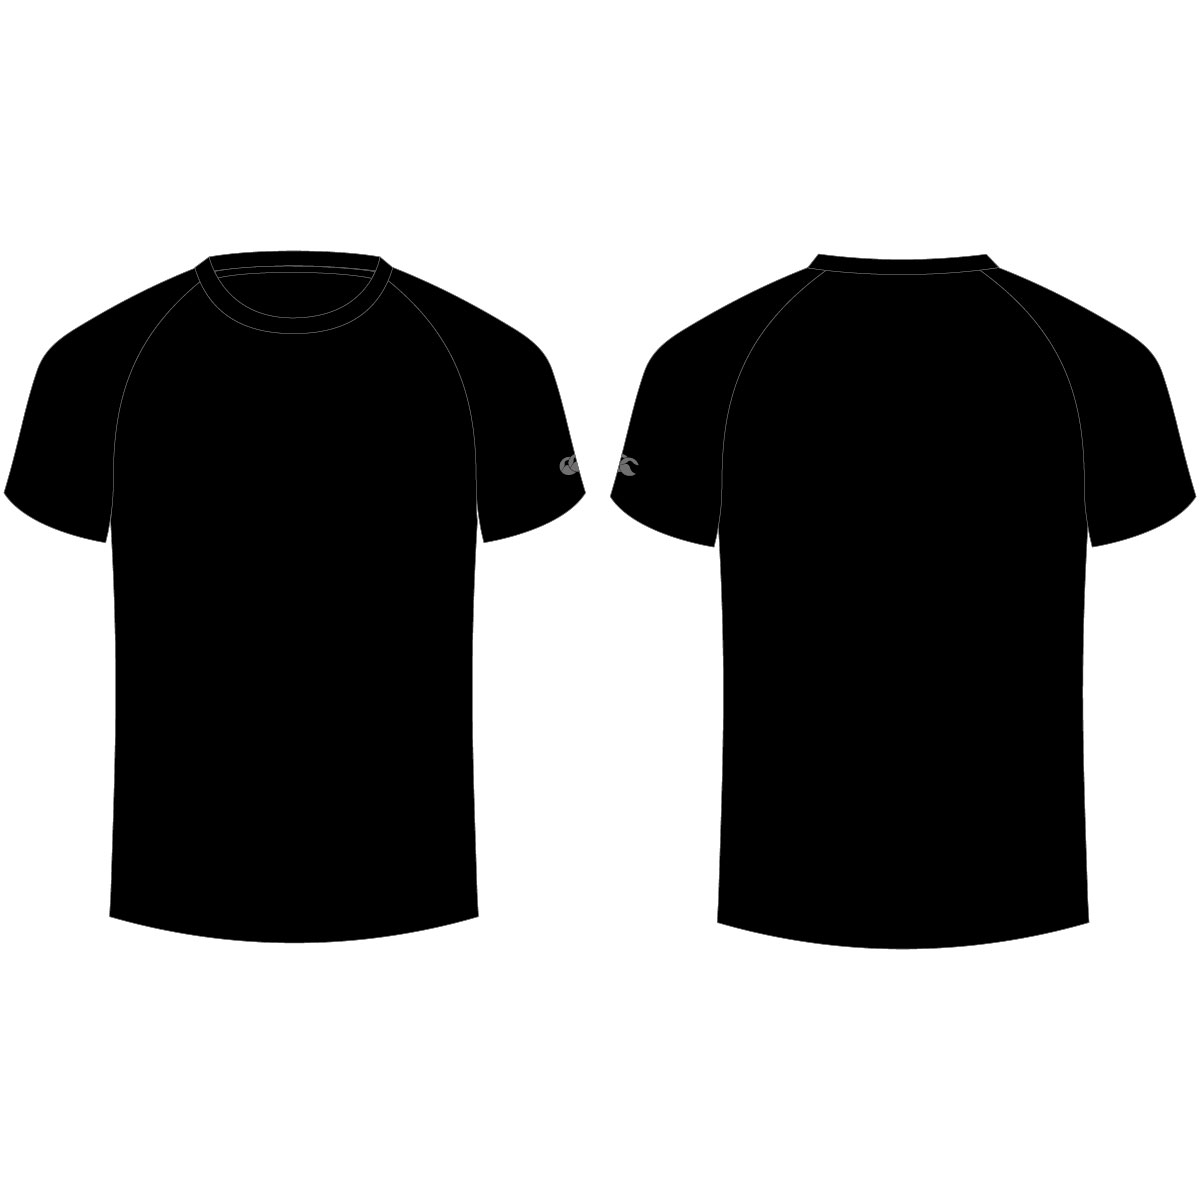 Gildan black t shirt template back